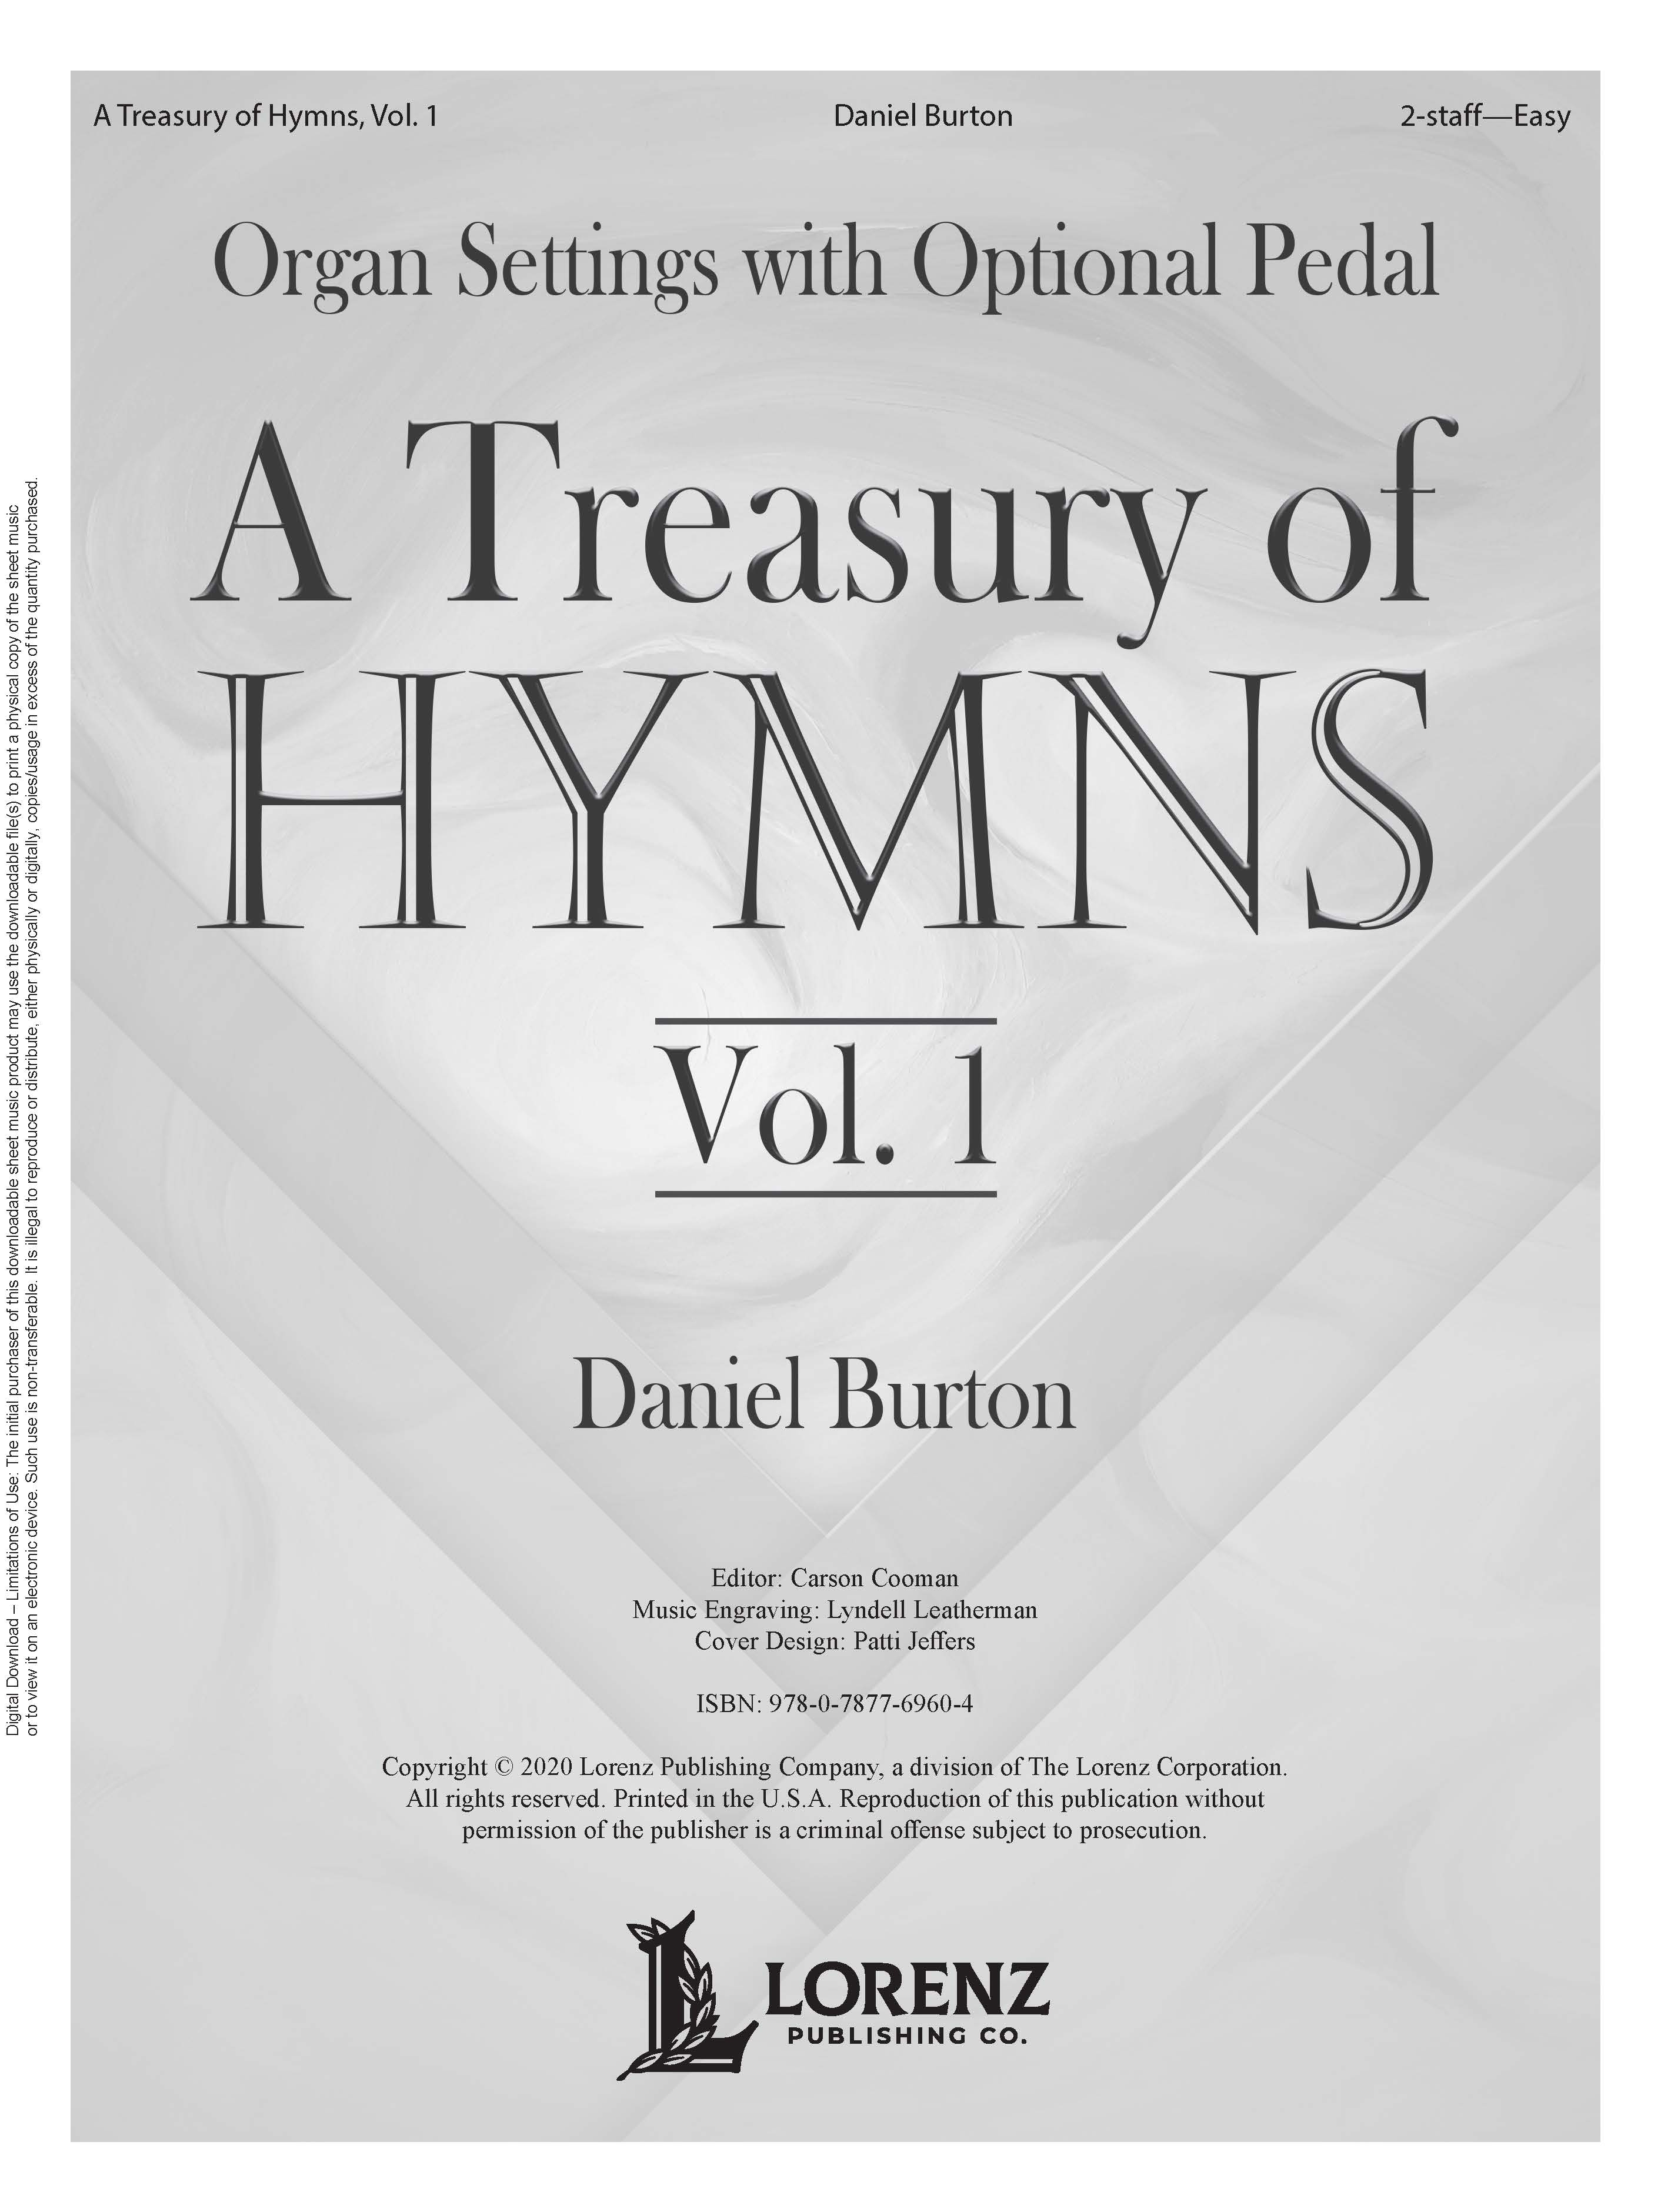 A Treasury of Hymns, Vol. 1 - Digital Download